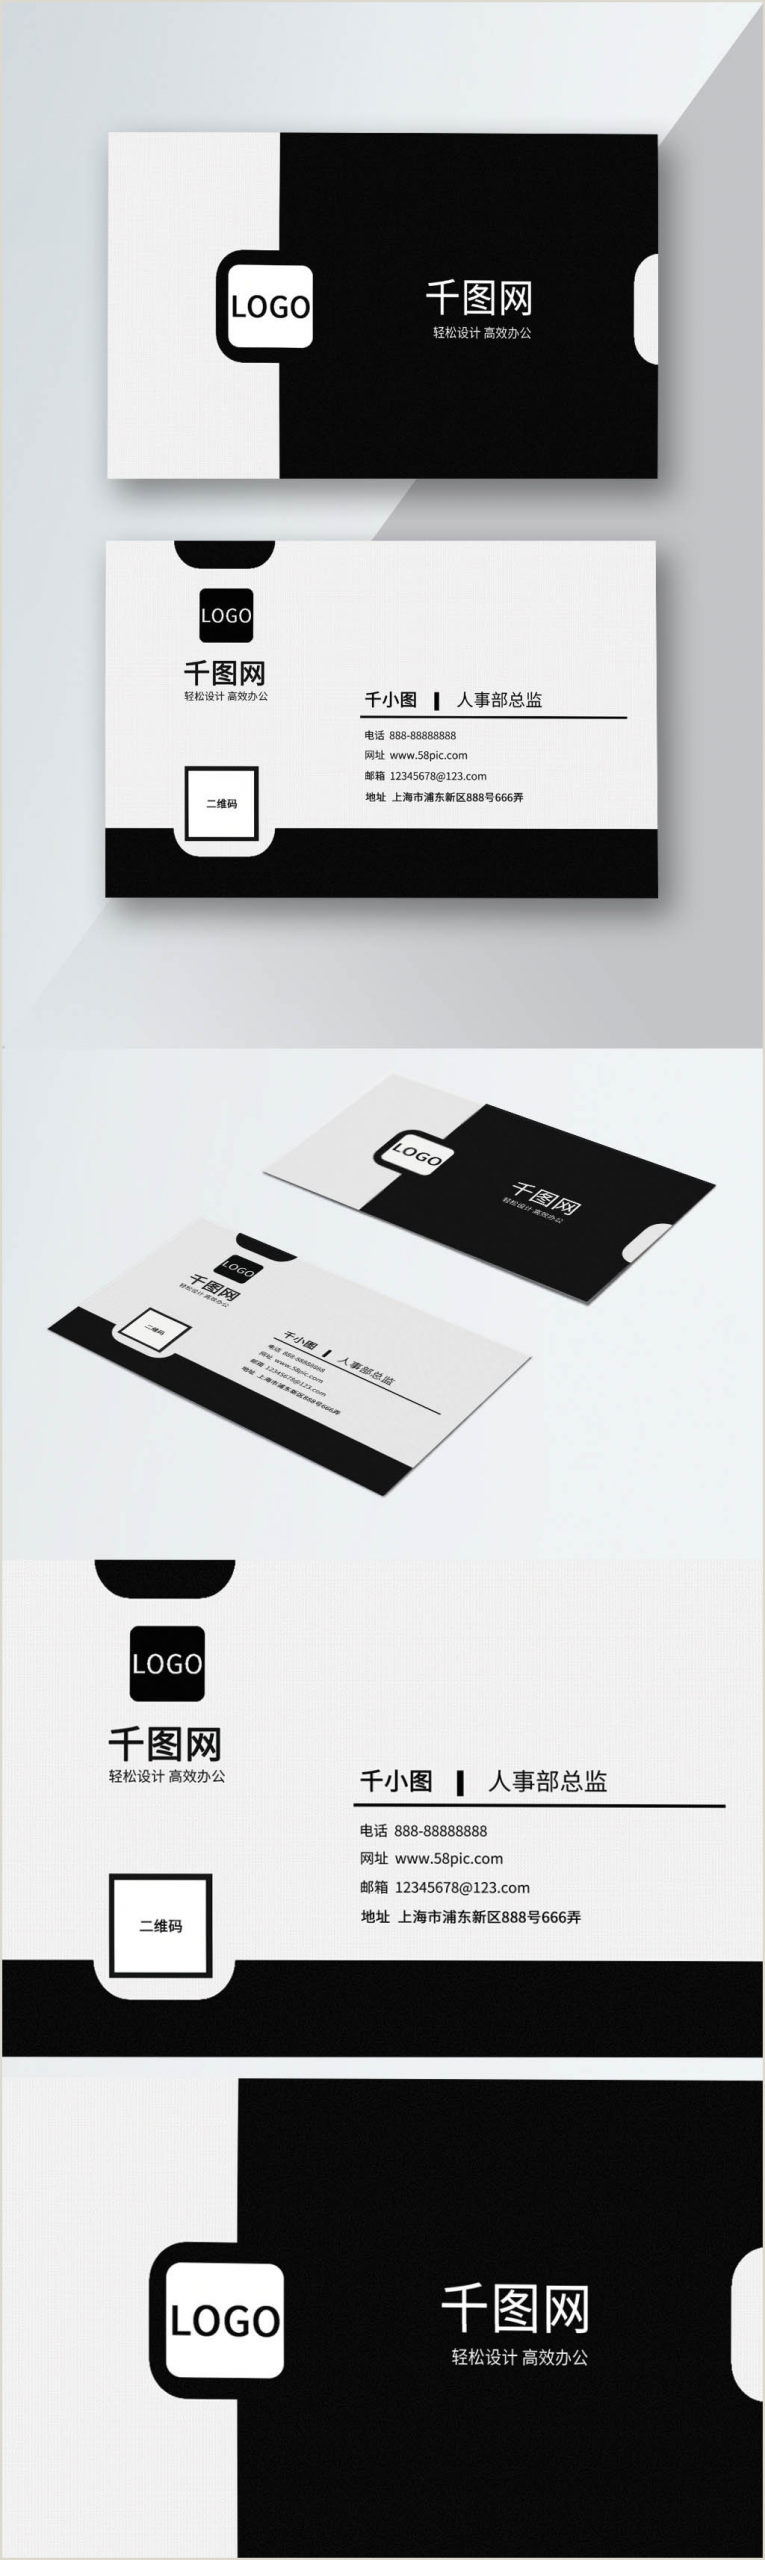 Black Business Card Design Black And White Business Senior Business Card With Qr Code